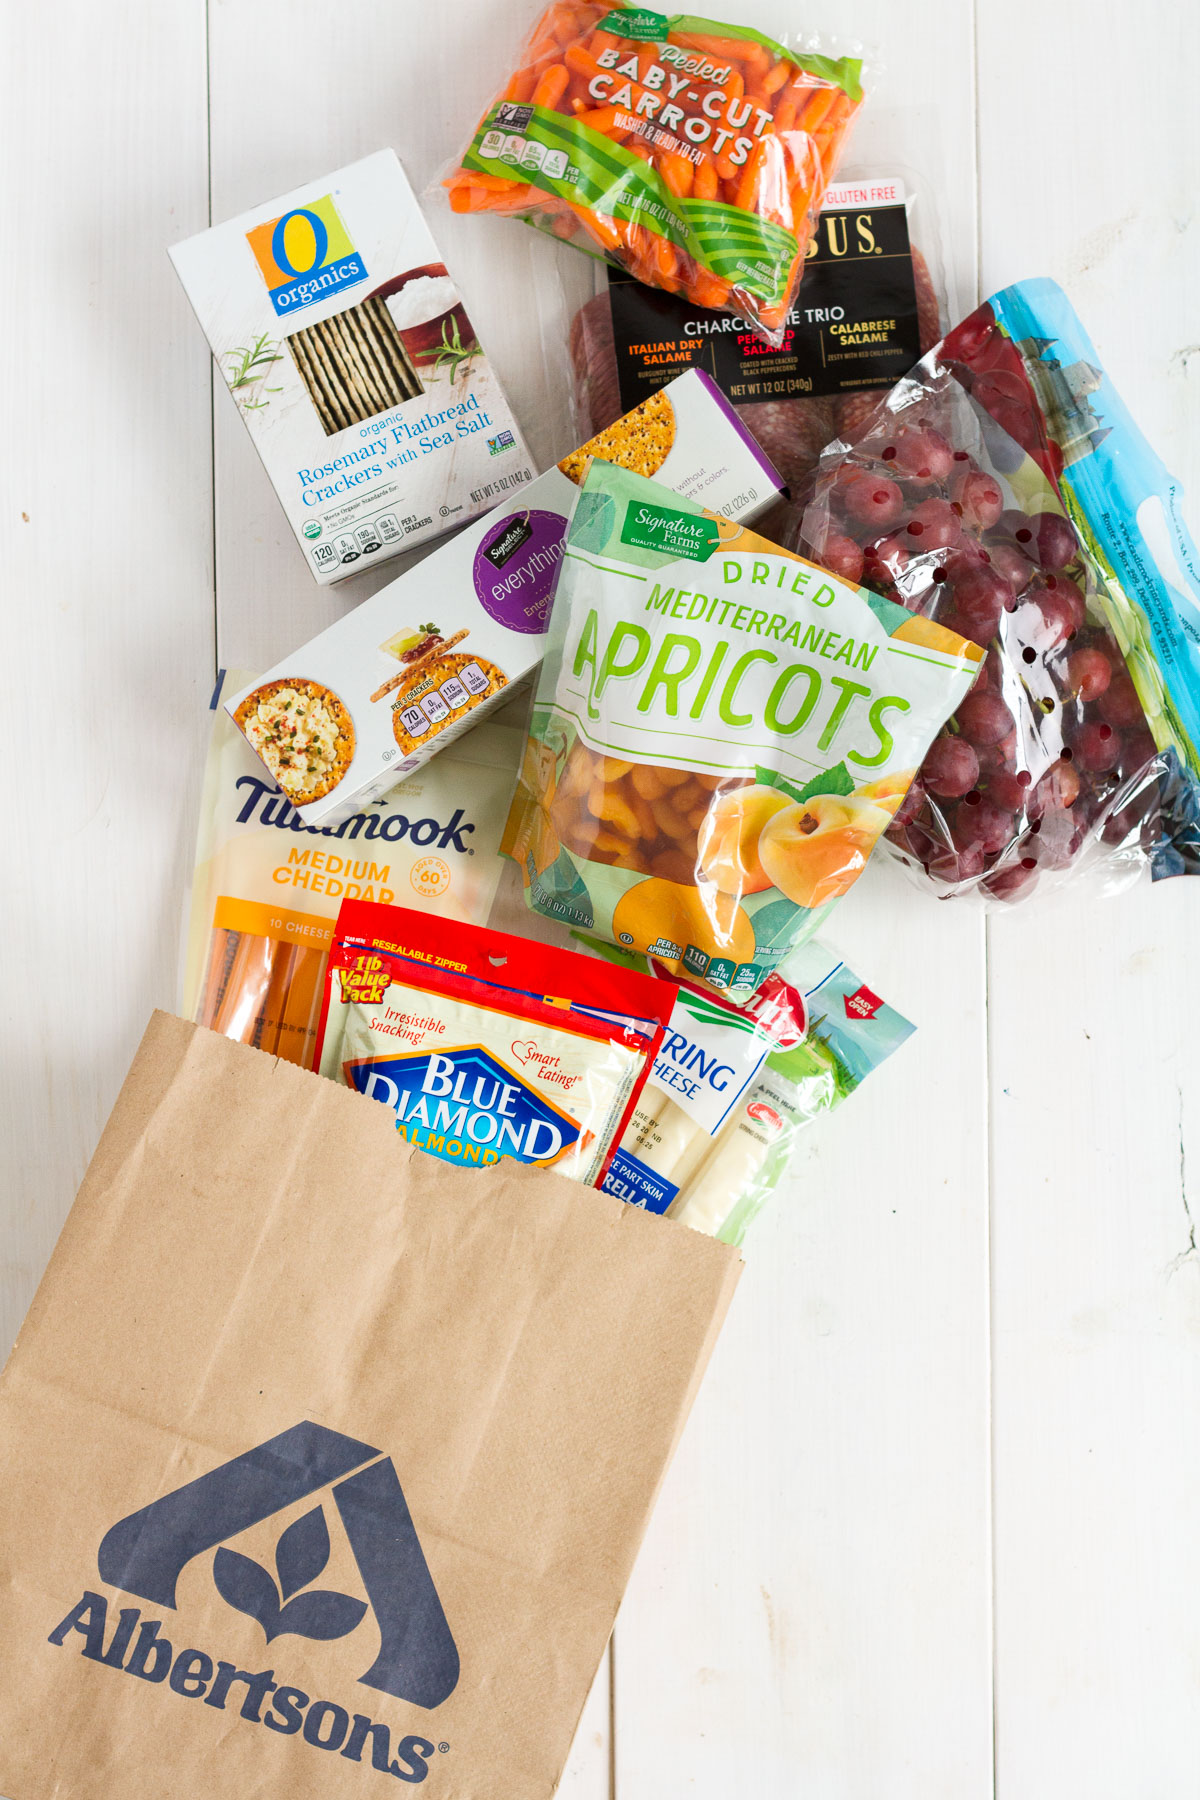 Our favorite charcuterie board snacks from Albertsons.